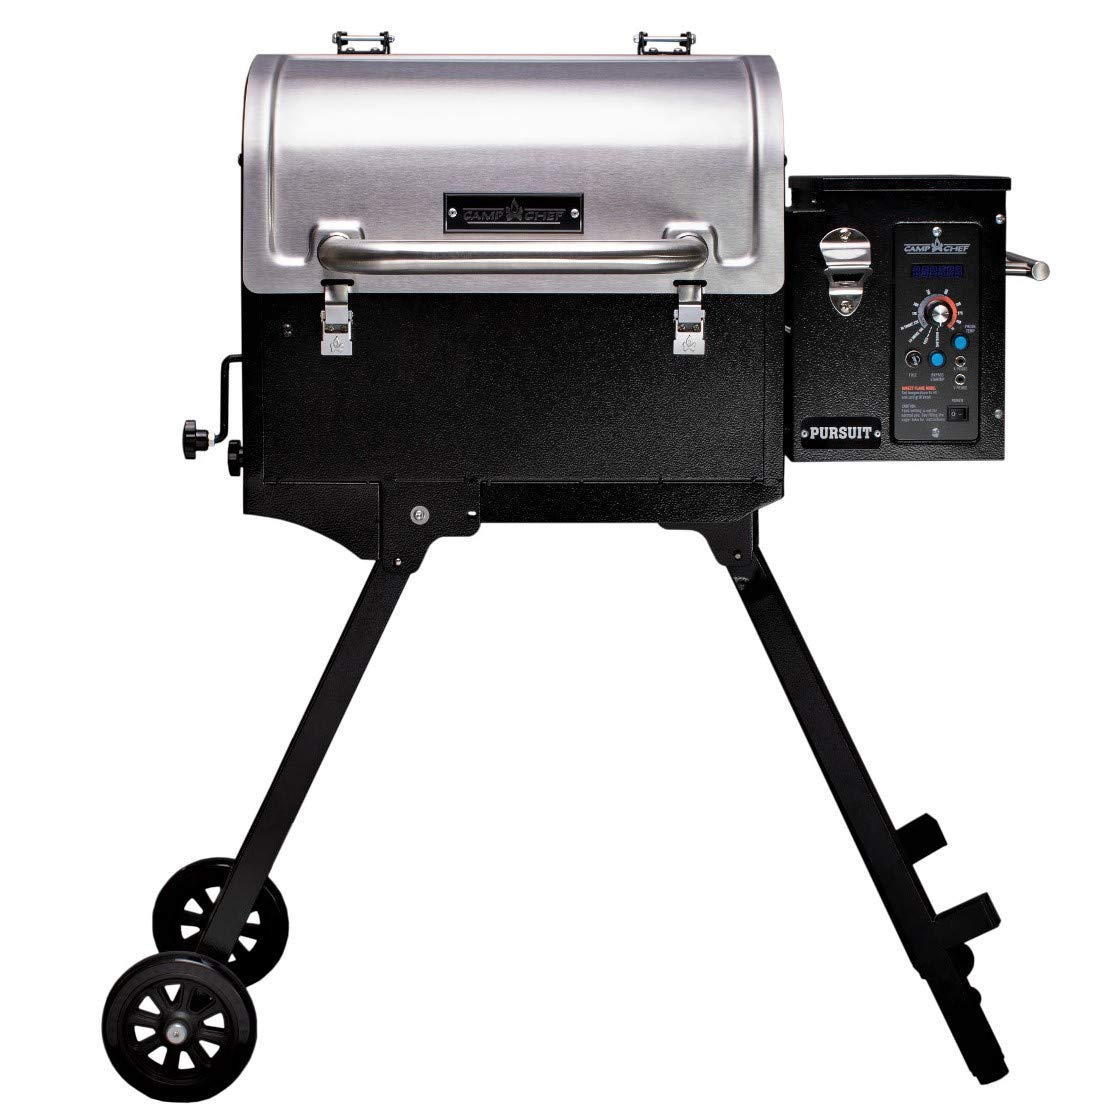 Camp Chef Pursuit 20 Portable Pellet Grill Smoker, Stainless Steel (PPG20) - Smart Smoke - Slide and Grill Technology by Camp Chef